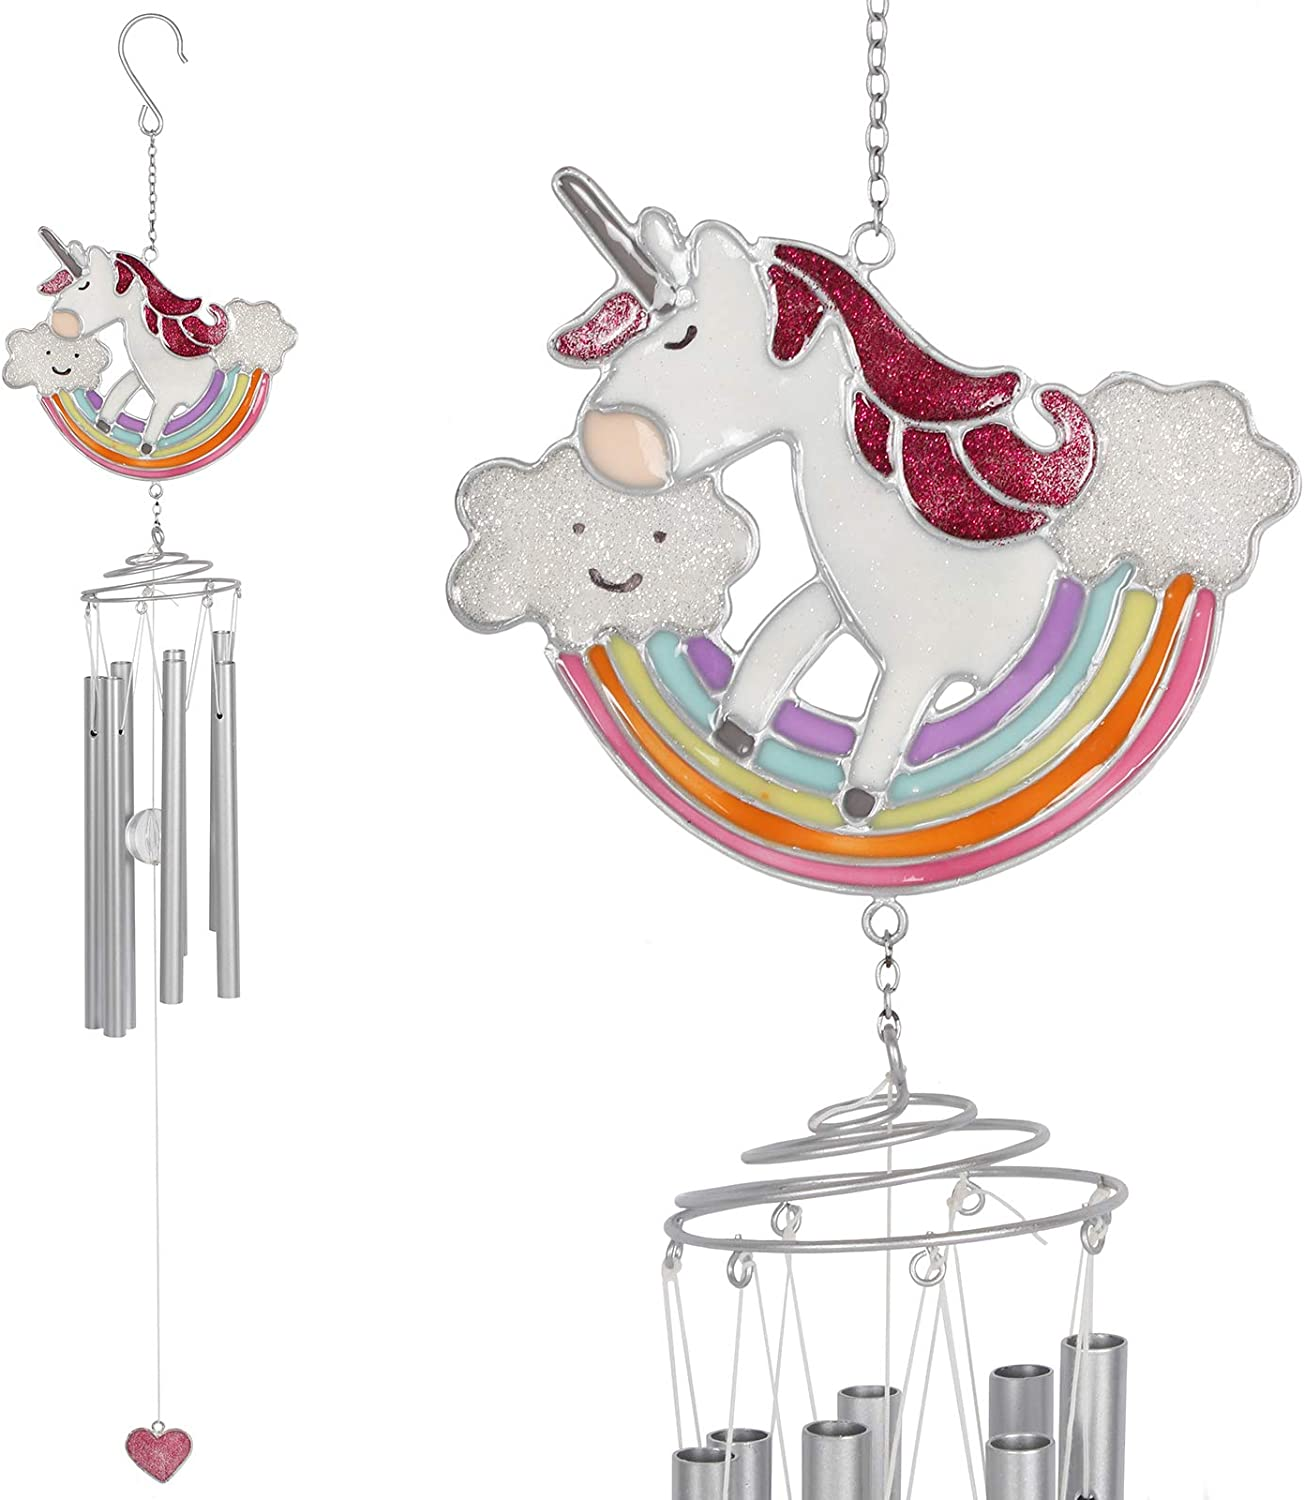 Jones Home & Gift Magical Rainbow Unicorn Windchime